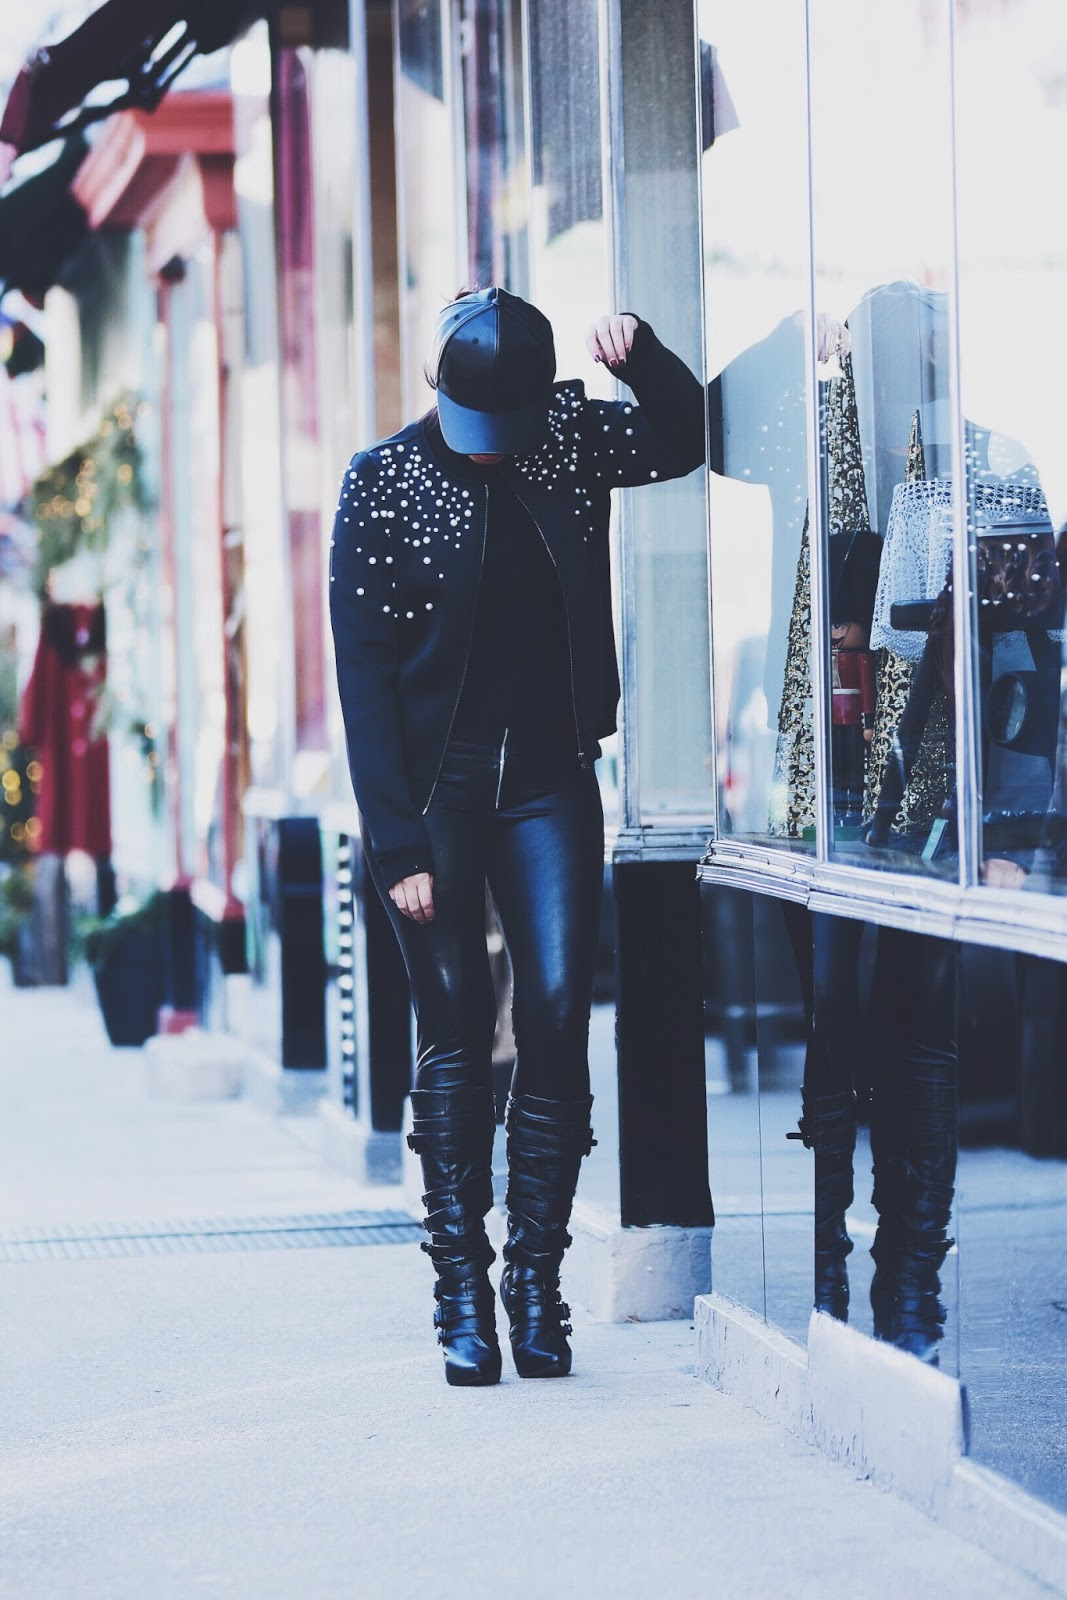 Pearl Embellished Bomber Jacket by Mari Estilo. wearing: Bomber Jacket: SheIn  Hat:  ZAFUL Sweater: Nordstrom  Pants: H&M Boots: Similar Here